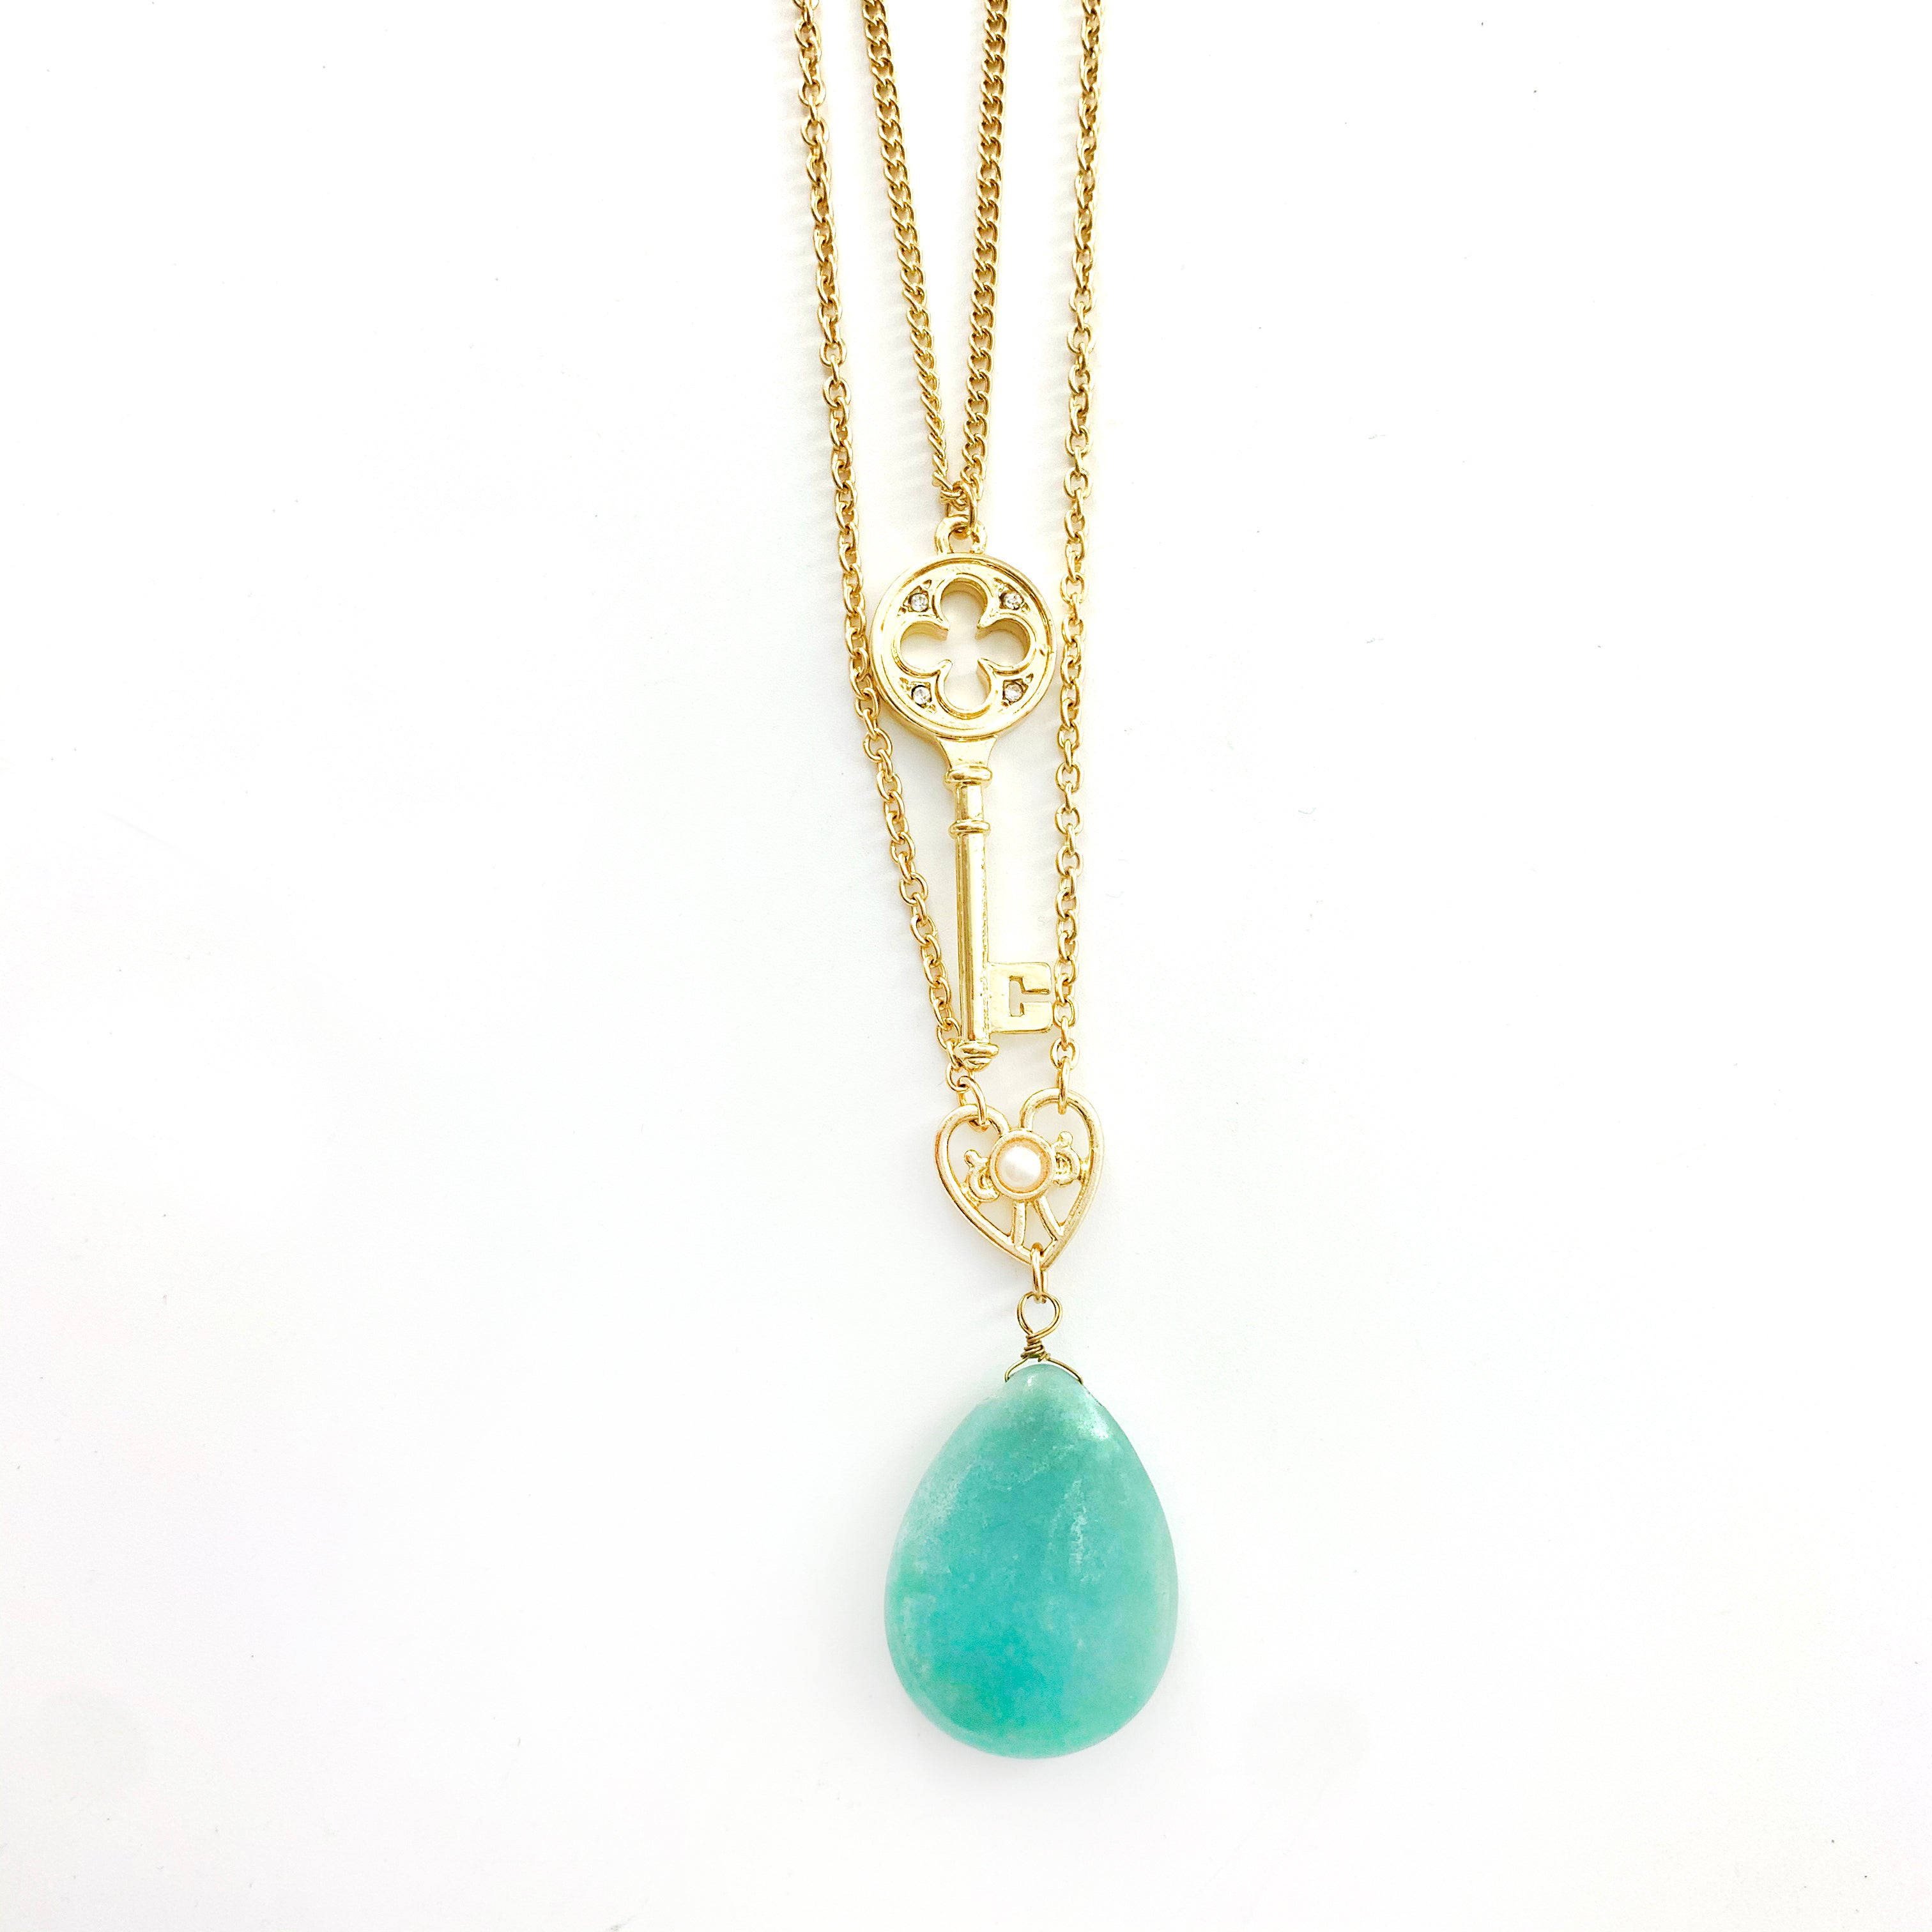 Necklace - Jade Teardrop Stone and Gold Key Pendant on double Gold Chain